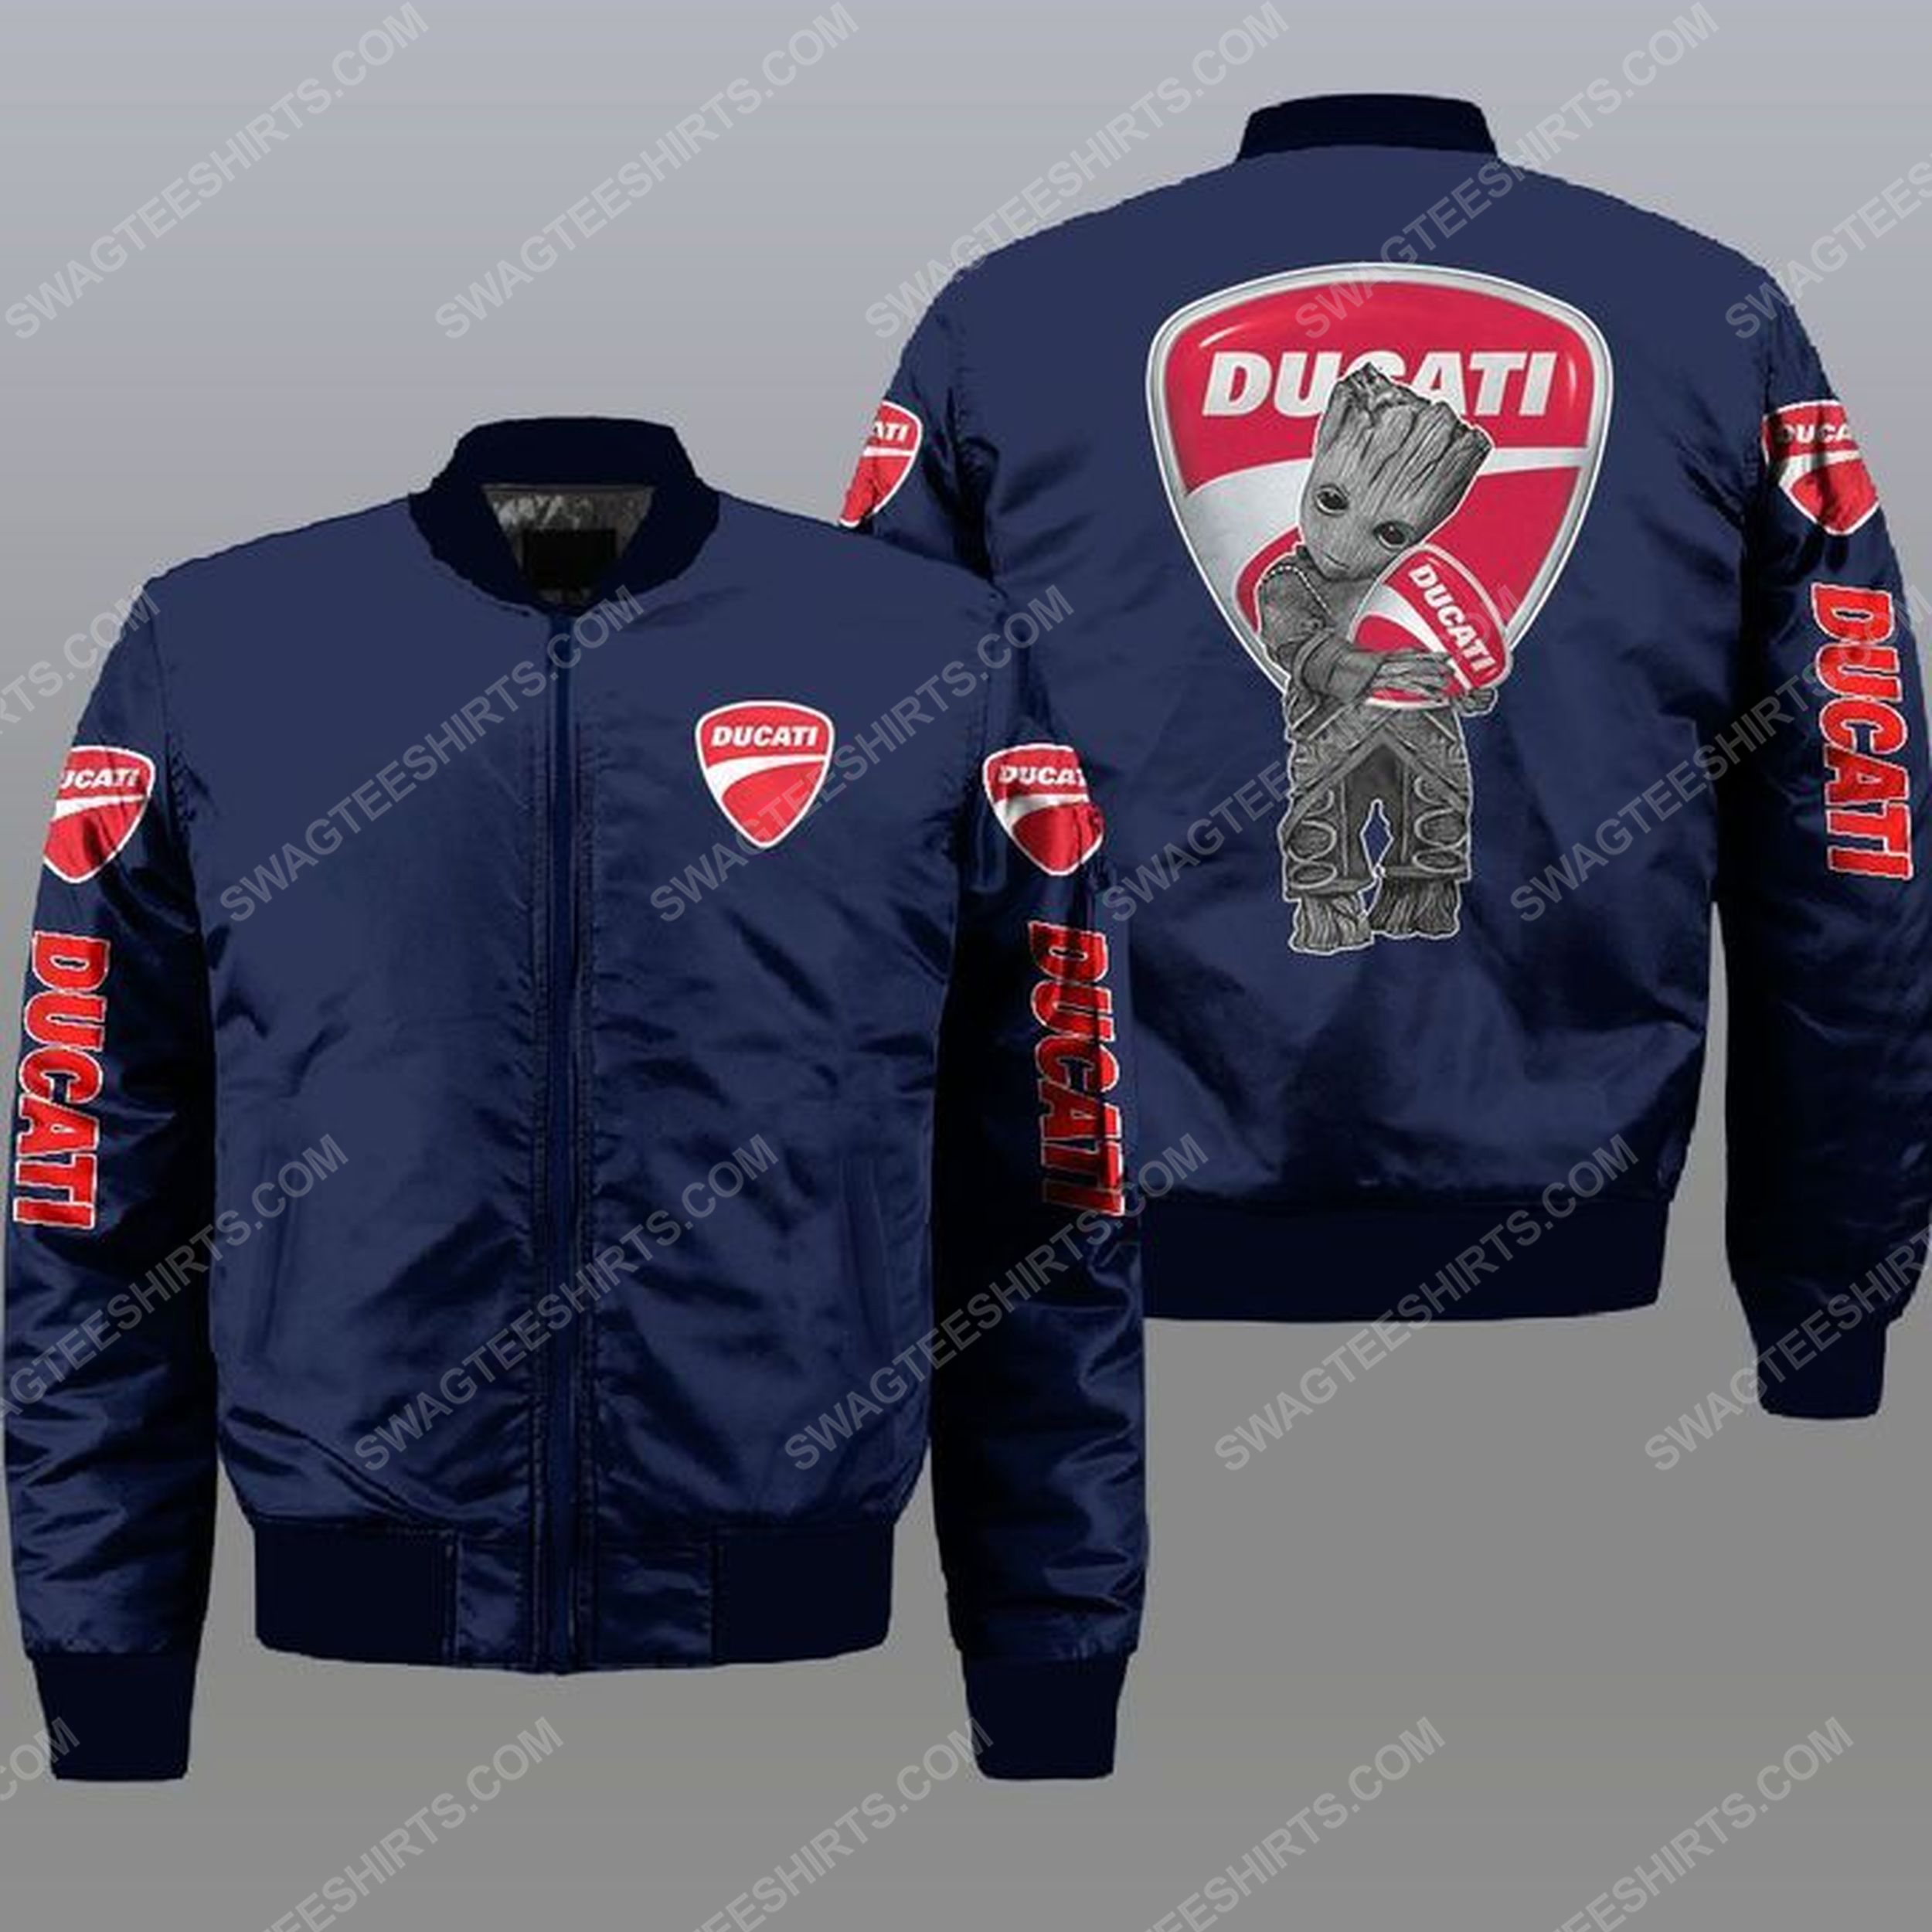 Baby groot and ducati all over print bomber jacket -navy 1